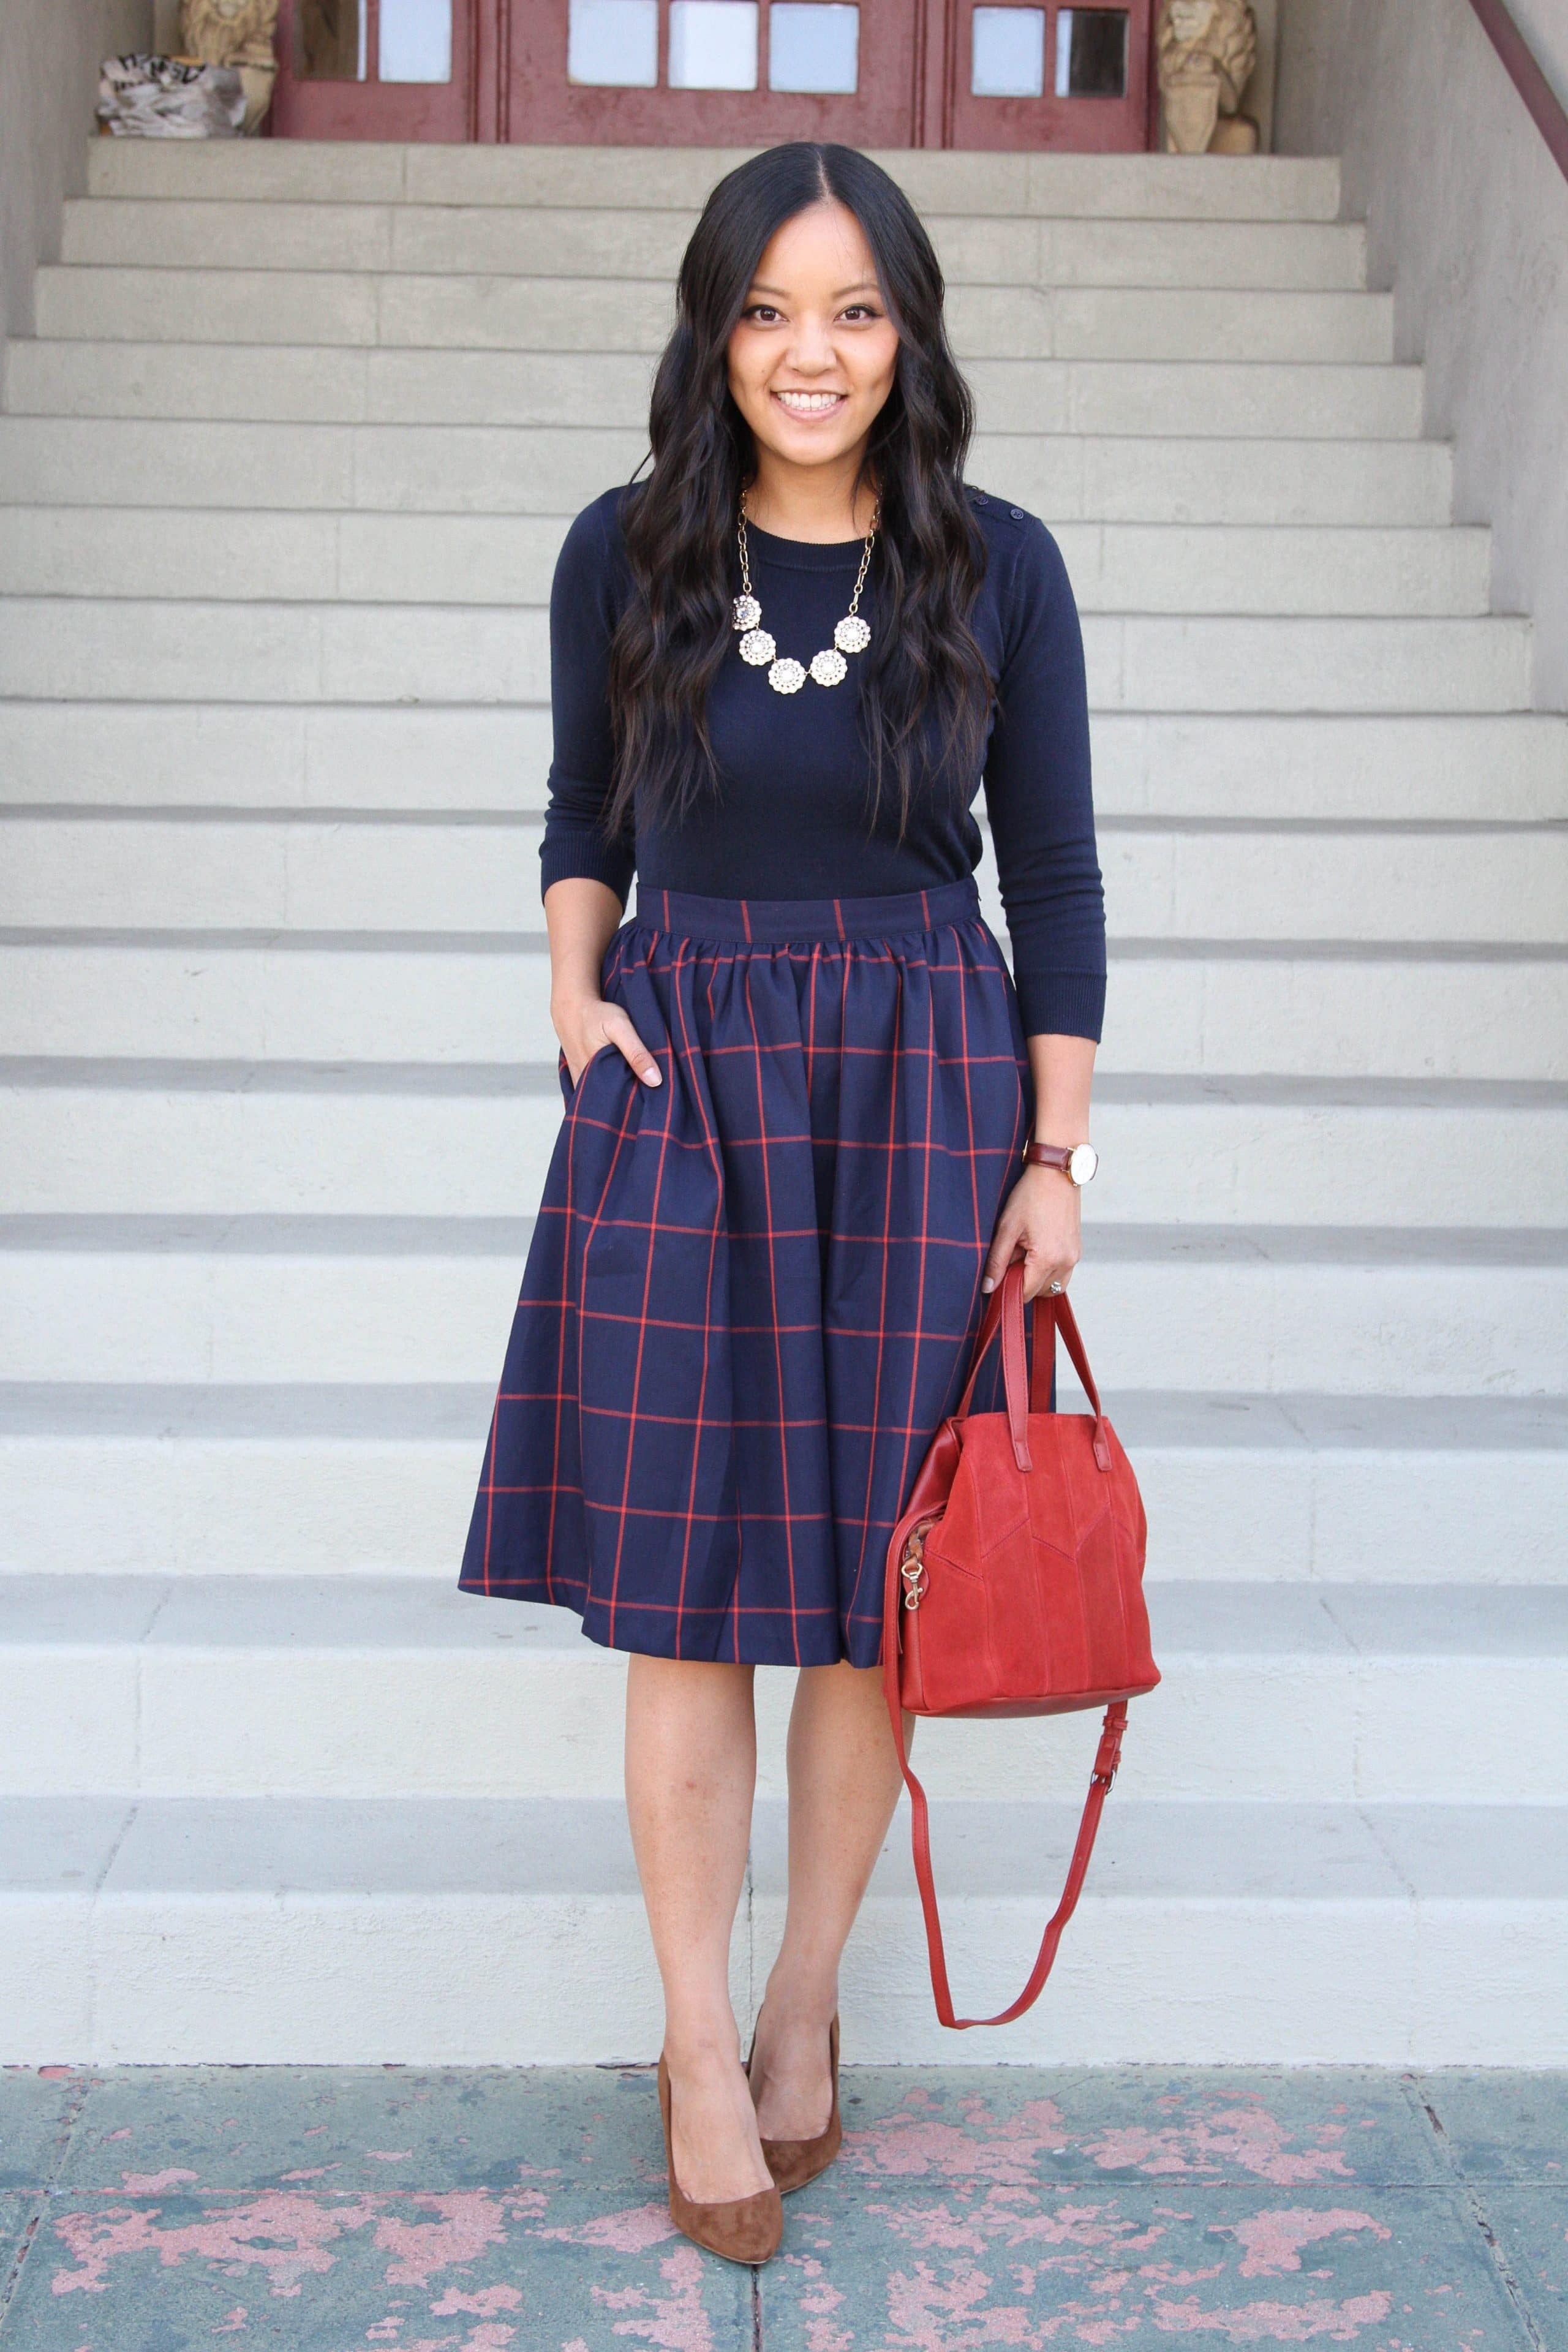 business casual outfit + Red bag + pumps + Navy Red Skirt + Pullover Sweater + Statement Necklace